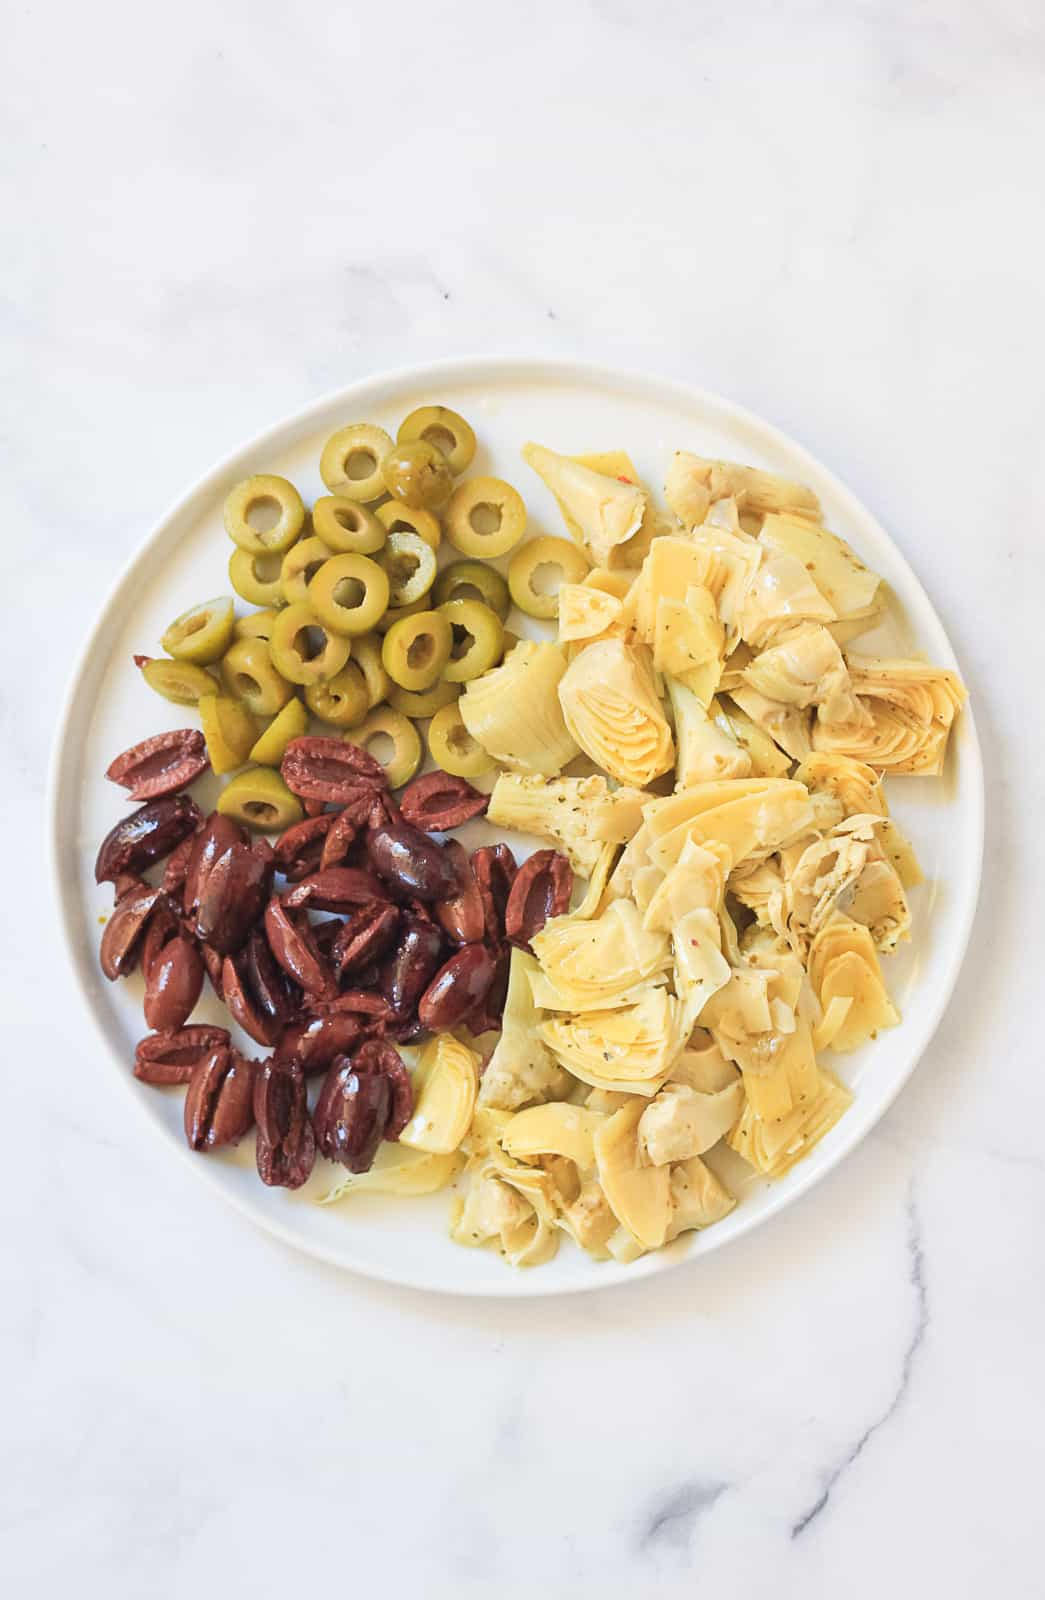 White plate full of cut green olives, khalamata olives and marinated artichoke hearts for a summer pasta.